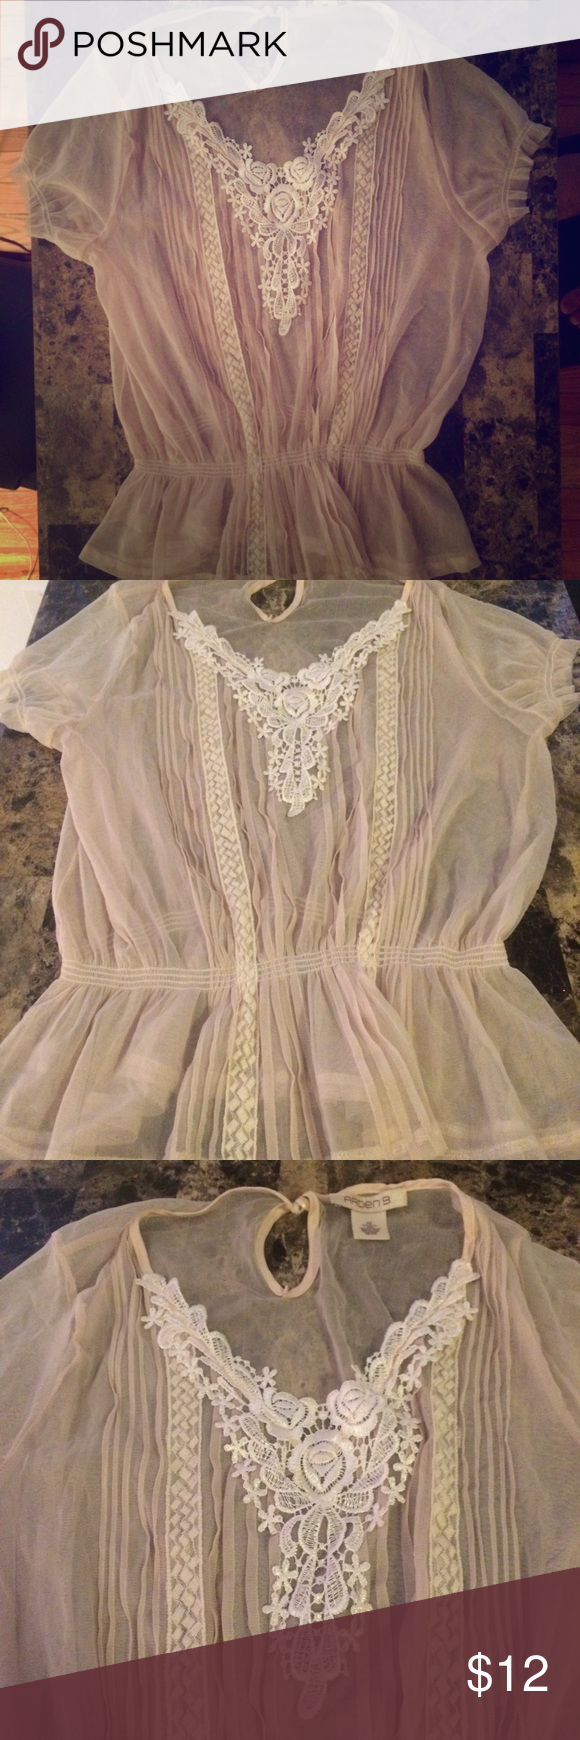 Elegant ARDEN B Sheer Blouse-XS This beautiful delicate blouse by ARDEN B is sure to give class with a touch a chic to any outfit. This is a sheer blouse in excellent condition- like new. Size is XS. Arden B Tops Blouses